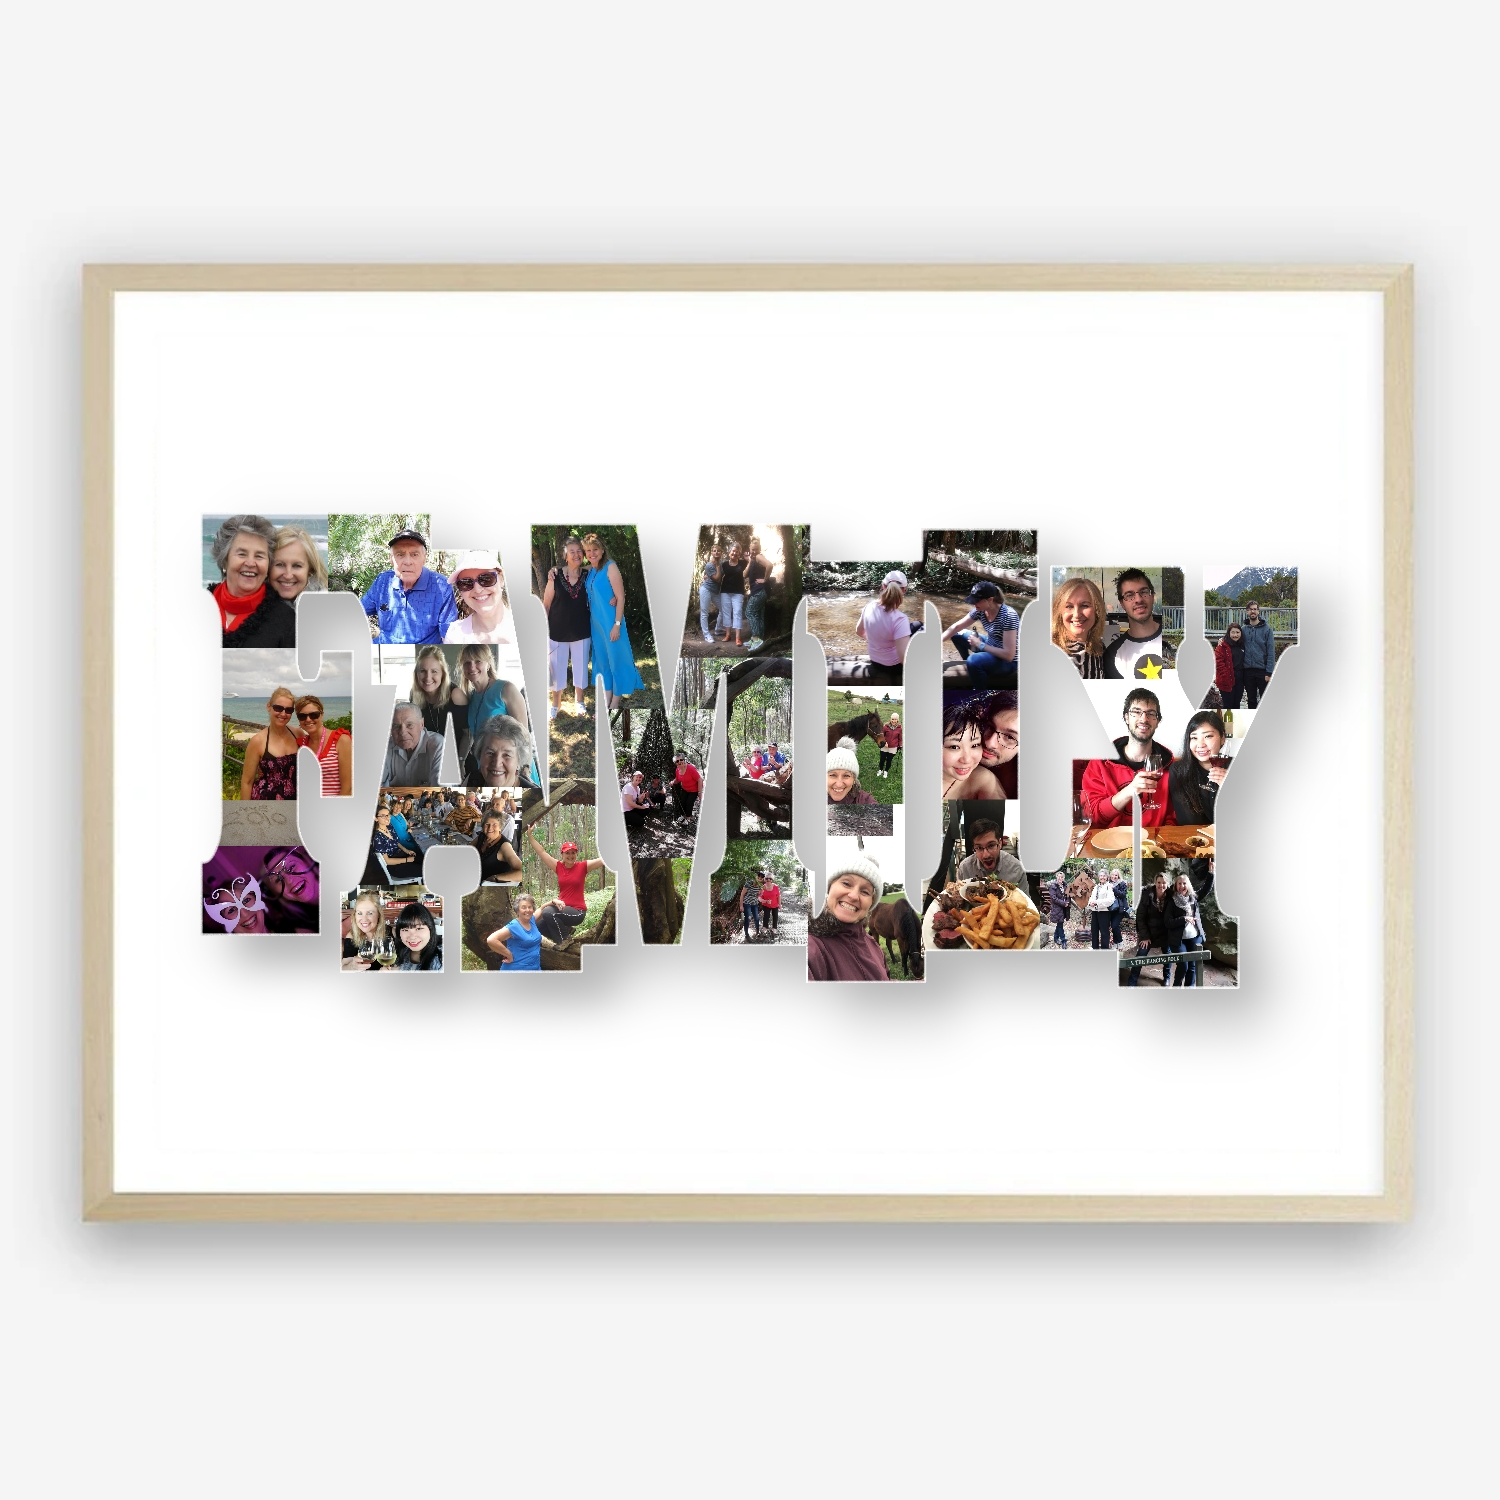 Family Photo Collage Digital Print Gift Idea by Kangaroo Kids Designs